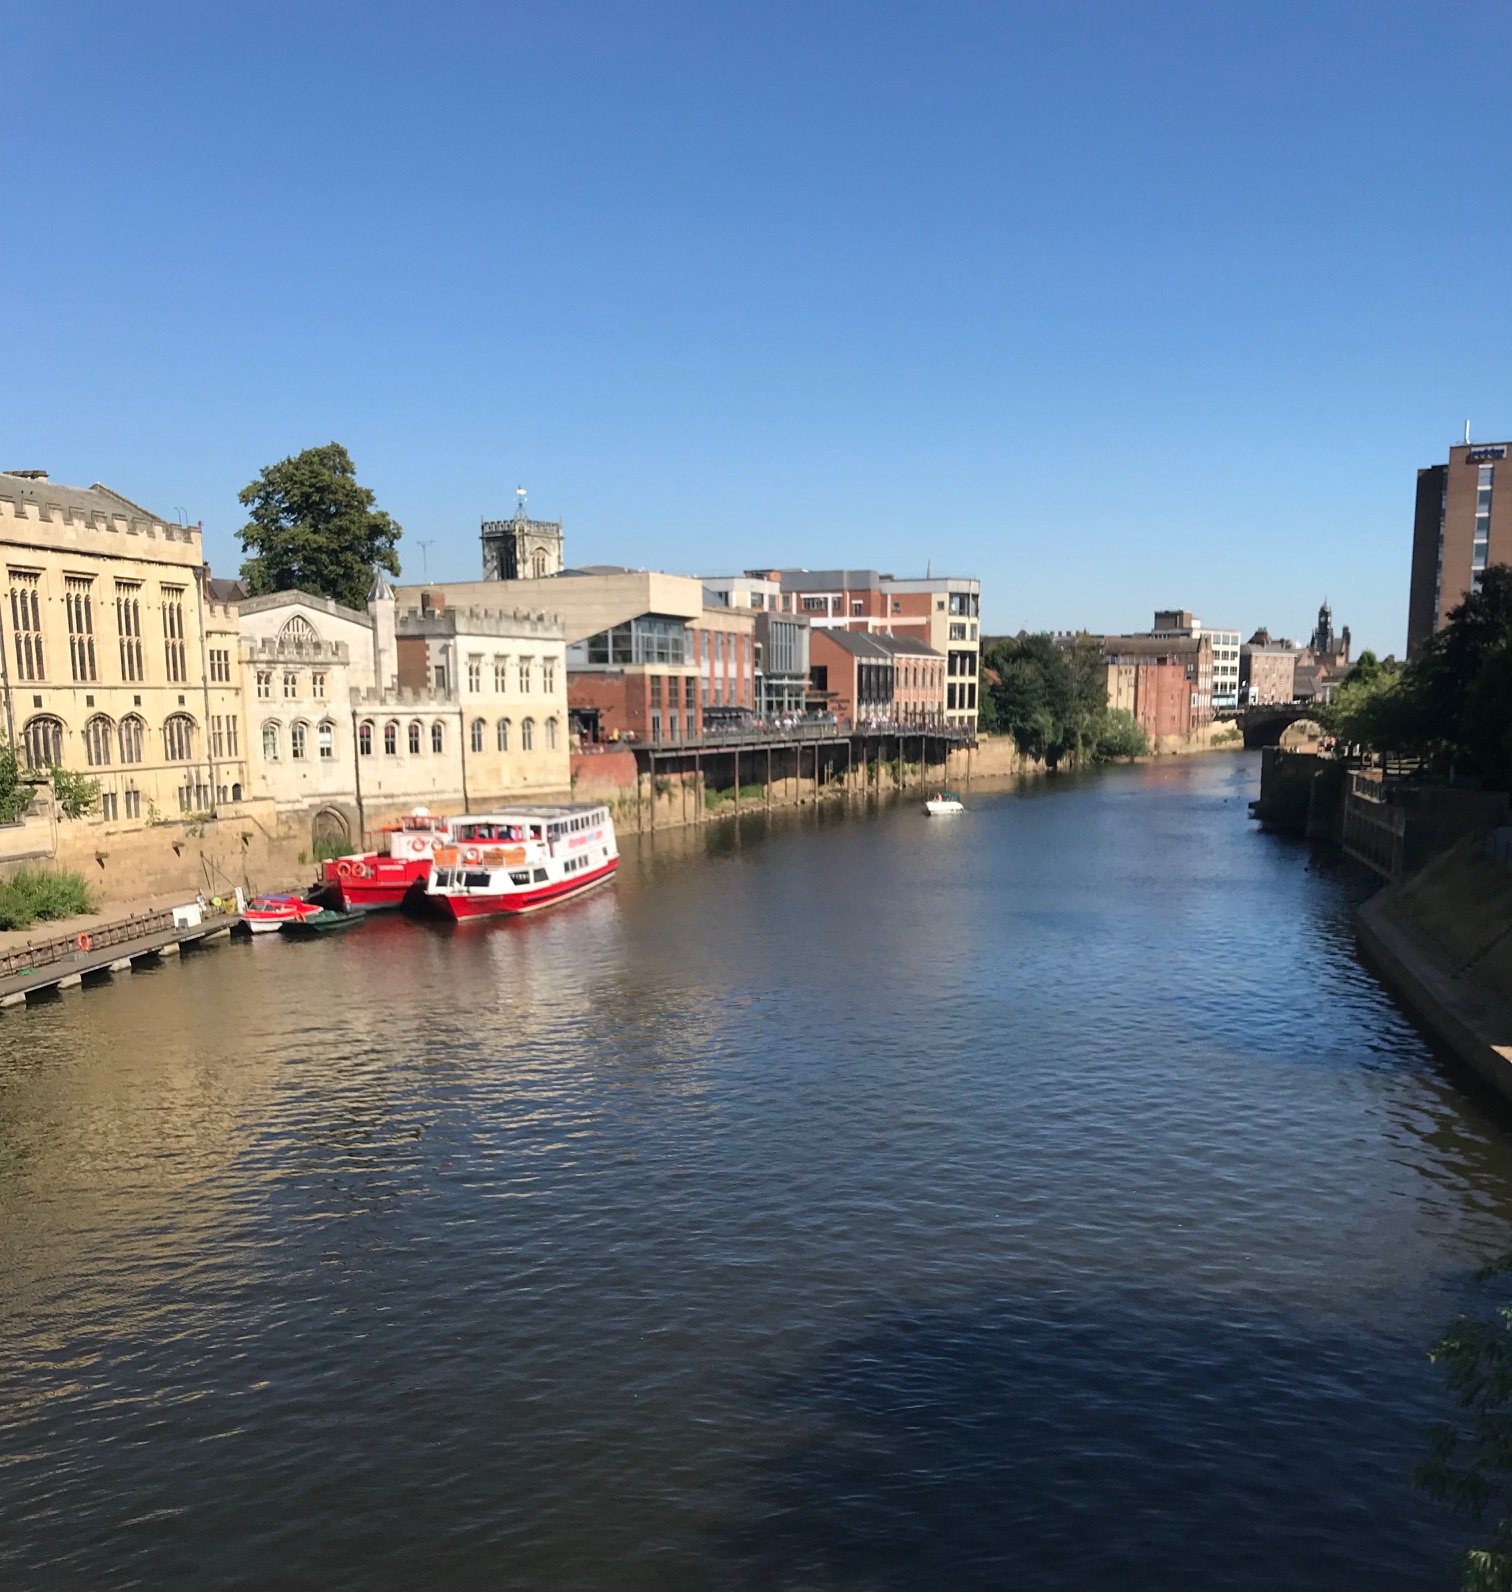 My life as a sociology student - the River Ouse